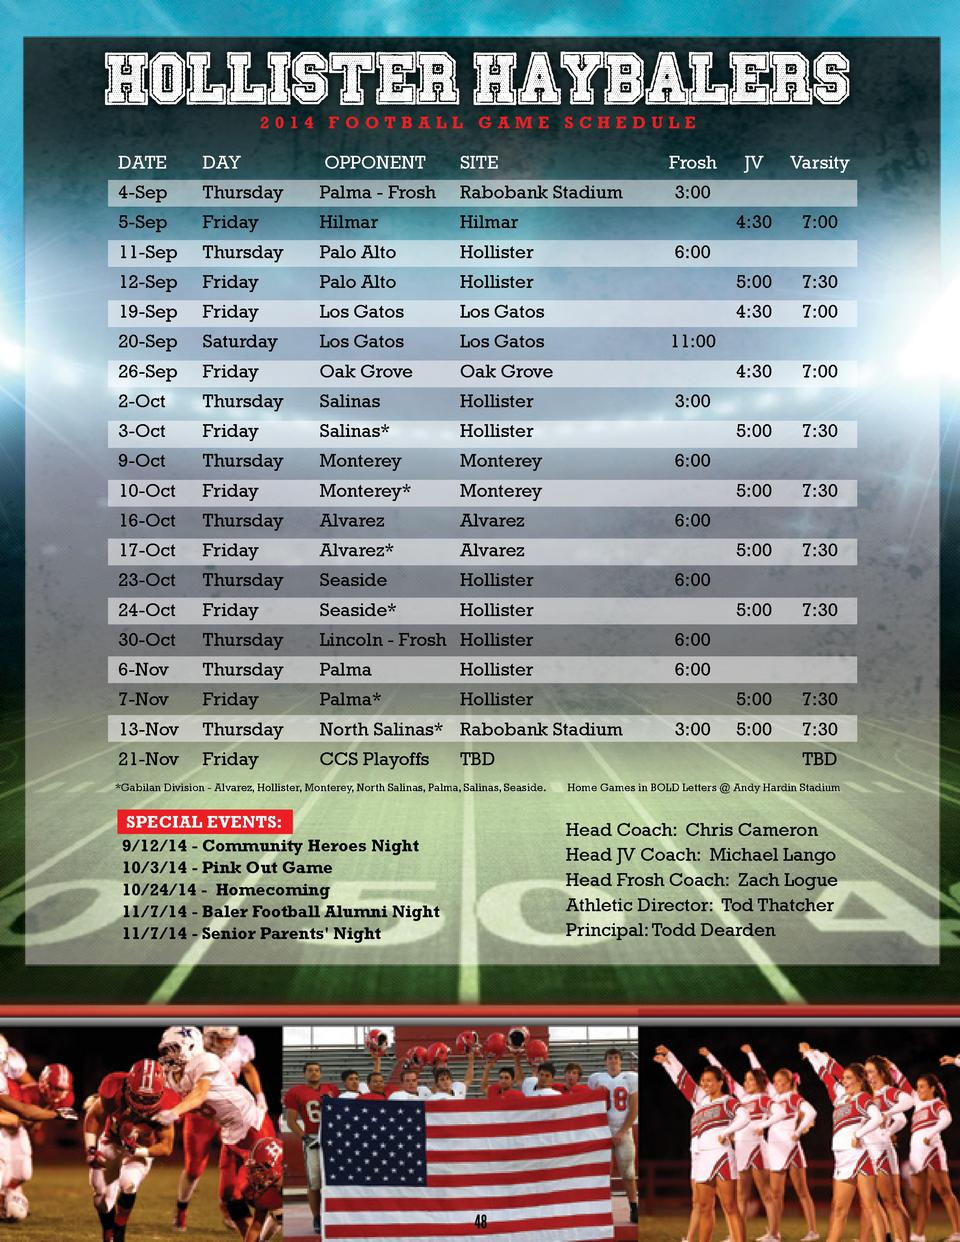 2014 FOOTBALL GAME SCHEDULE  DATE  DAY  OPPONENT  SITE  JV  Varsity  4-Sep  Thursday  Palma - Frosh  Rabobank Stadium  5-S...